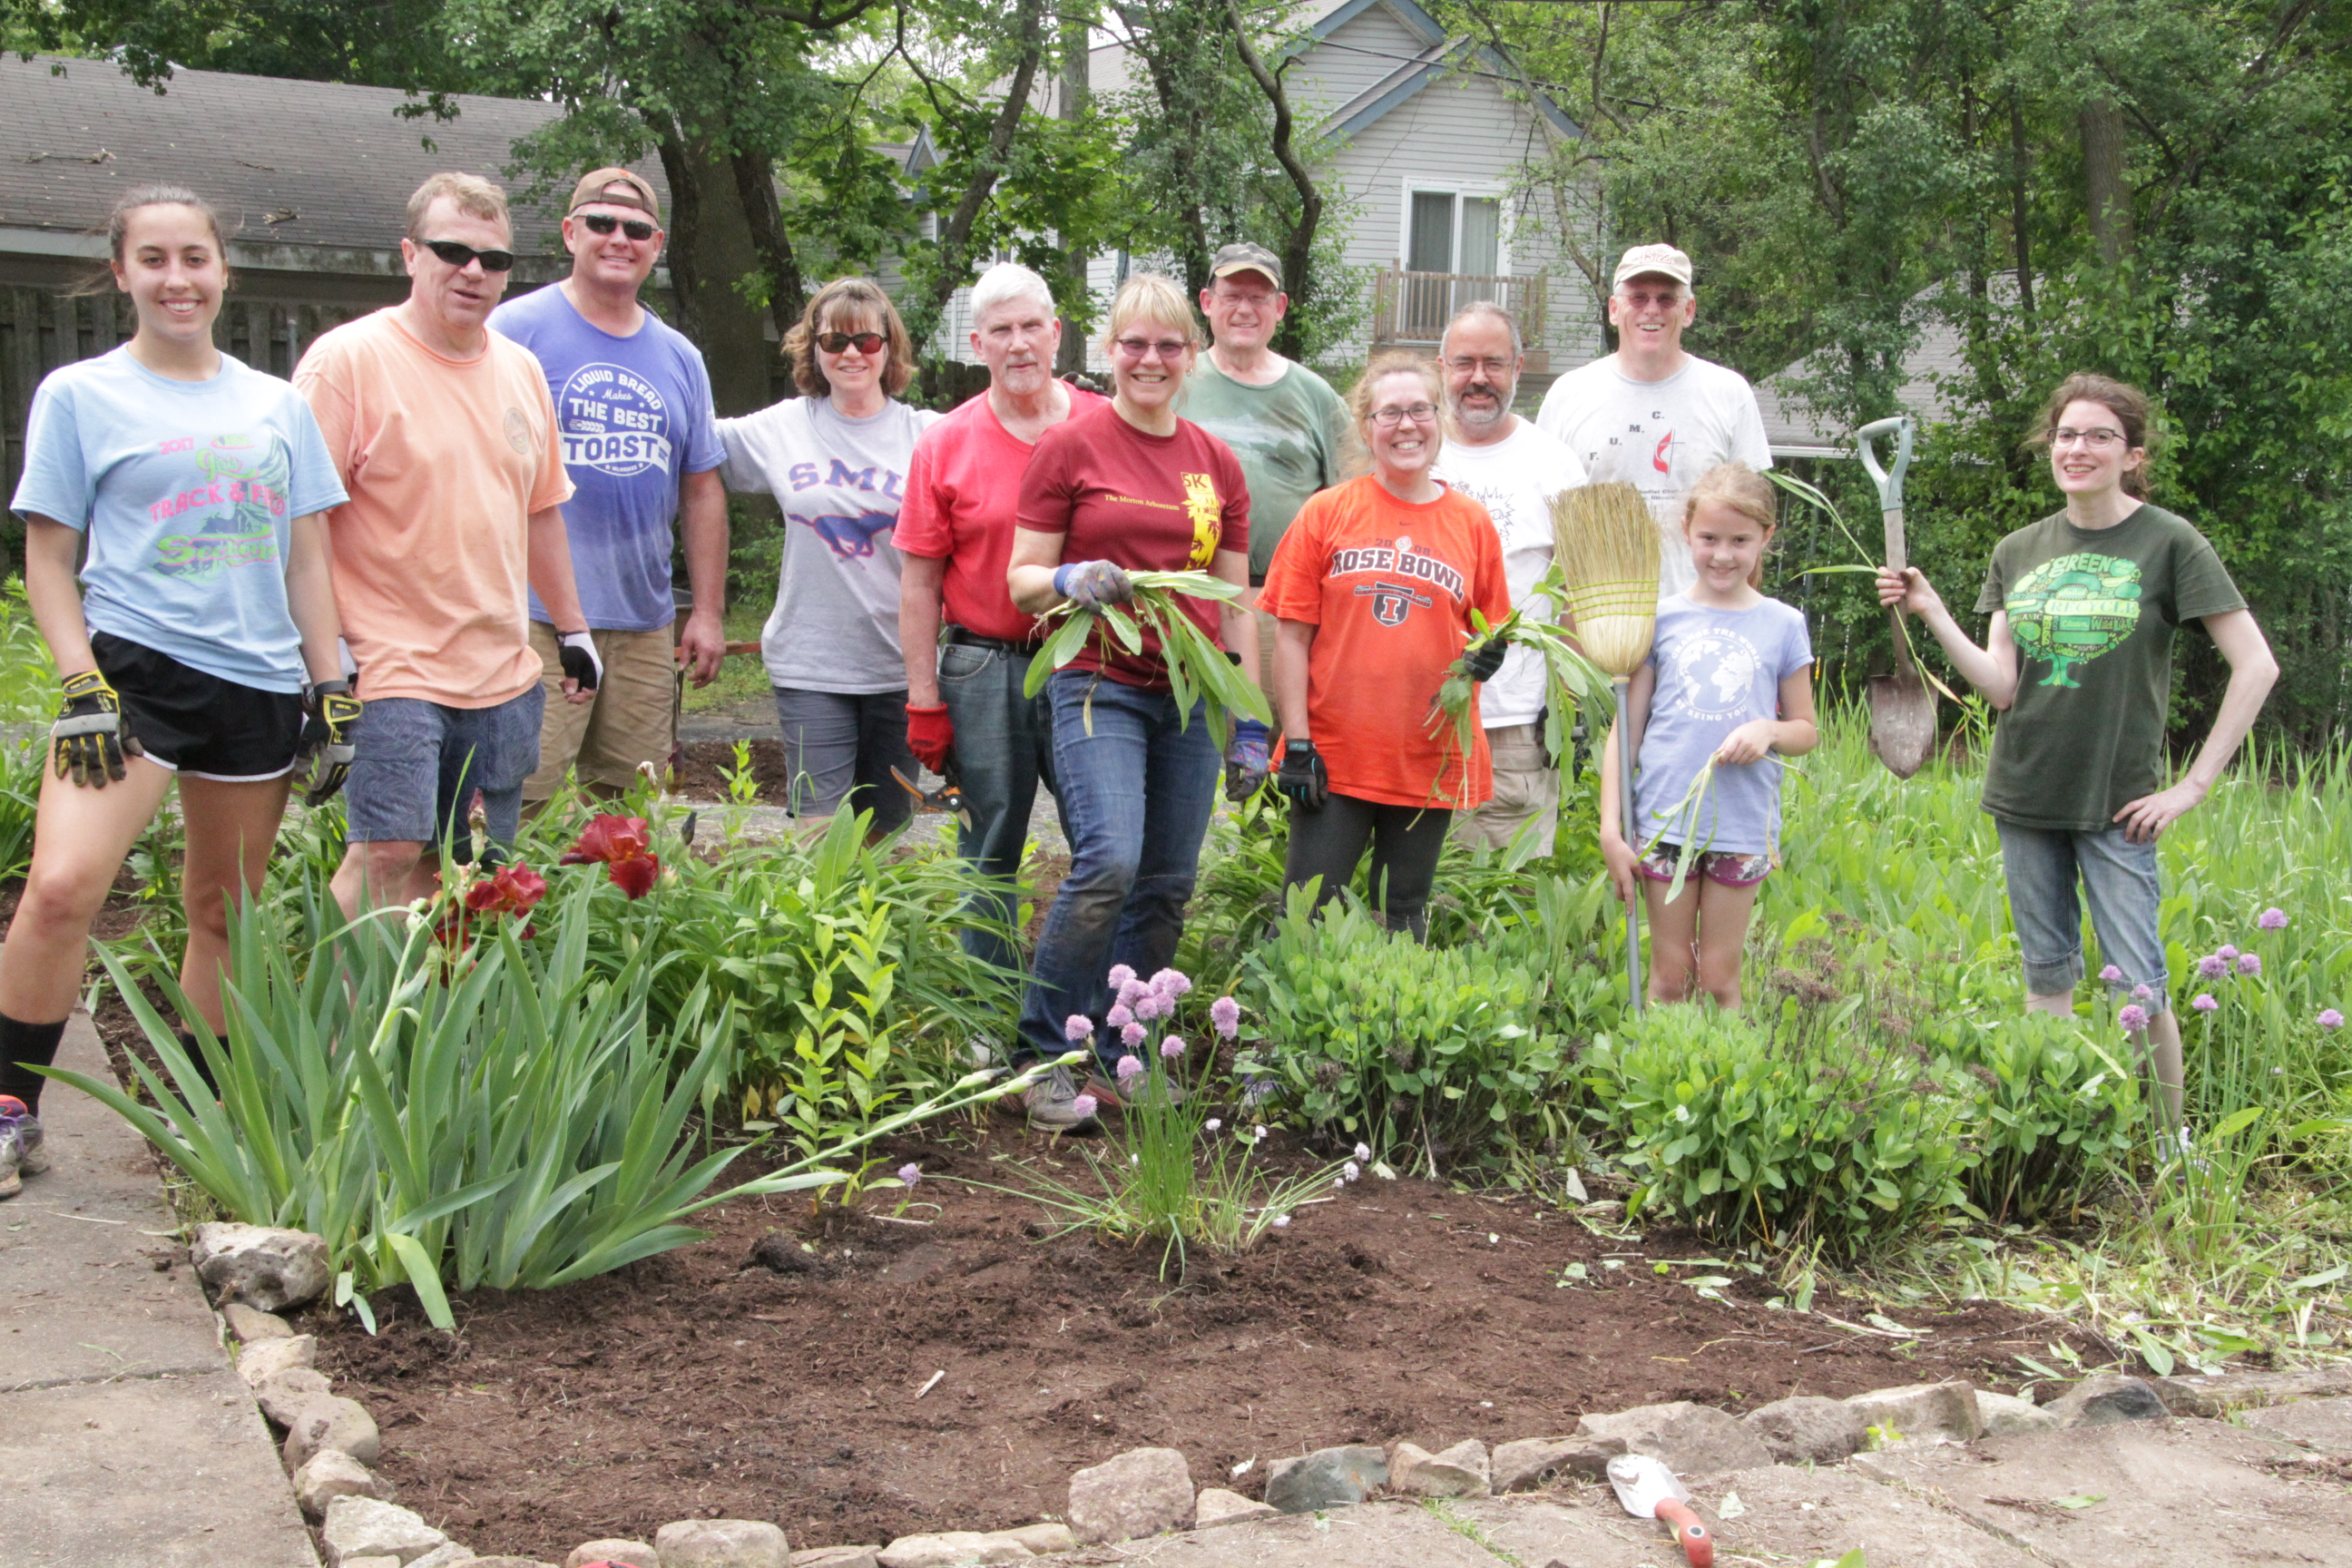 S.O.S. Work Group at Maple Avenue Parsonage